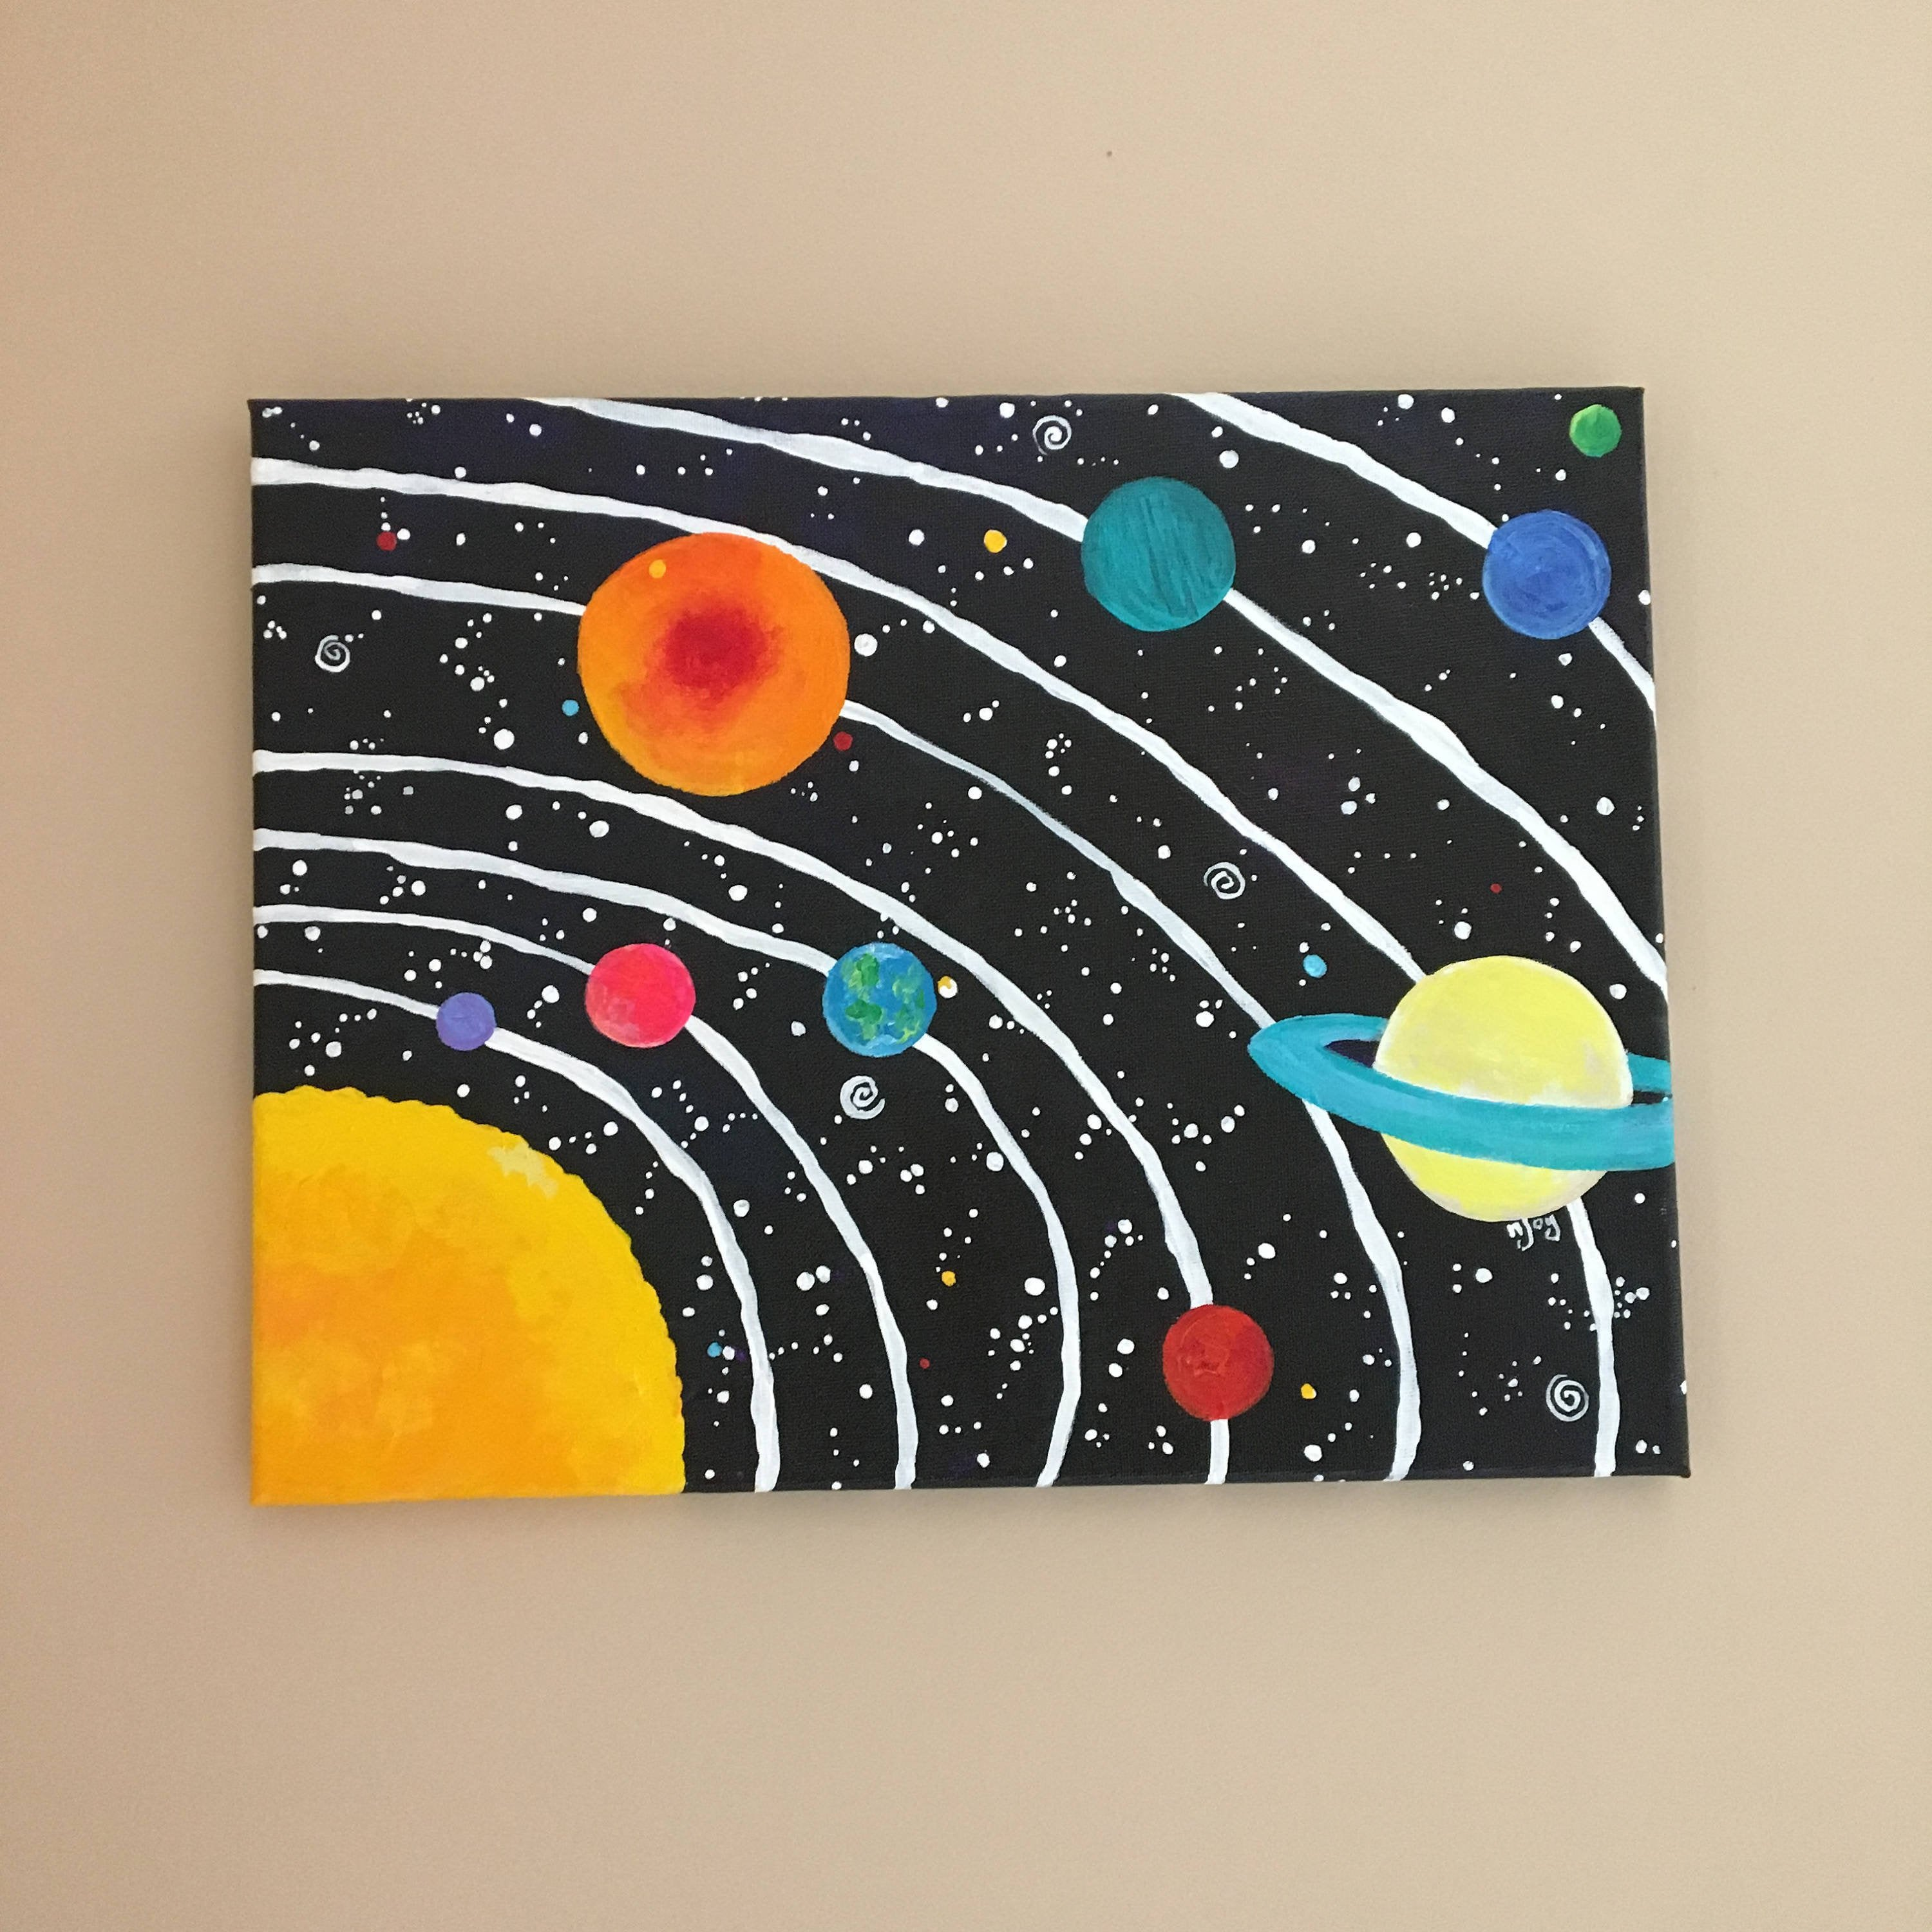 Solar System Bedroom Decor Lovely Space Art for Kids Room solar System No 11 14x11 Inch Acrylic Space Painting for Space themed Childrens Room or Baby Nursery Decor